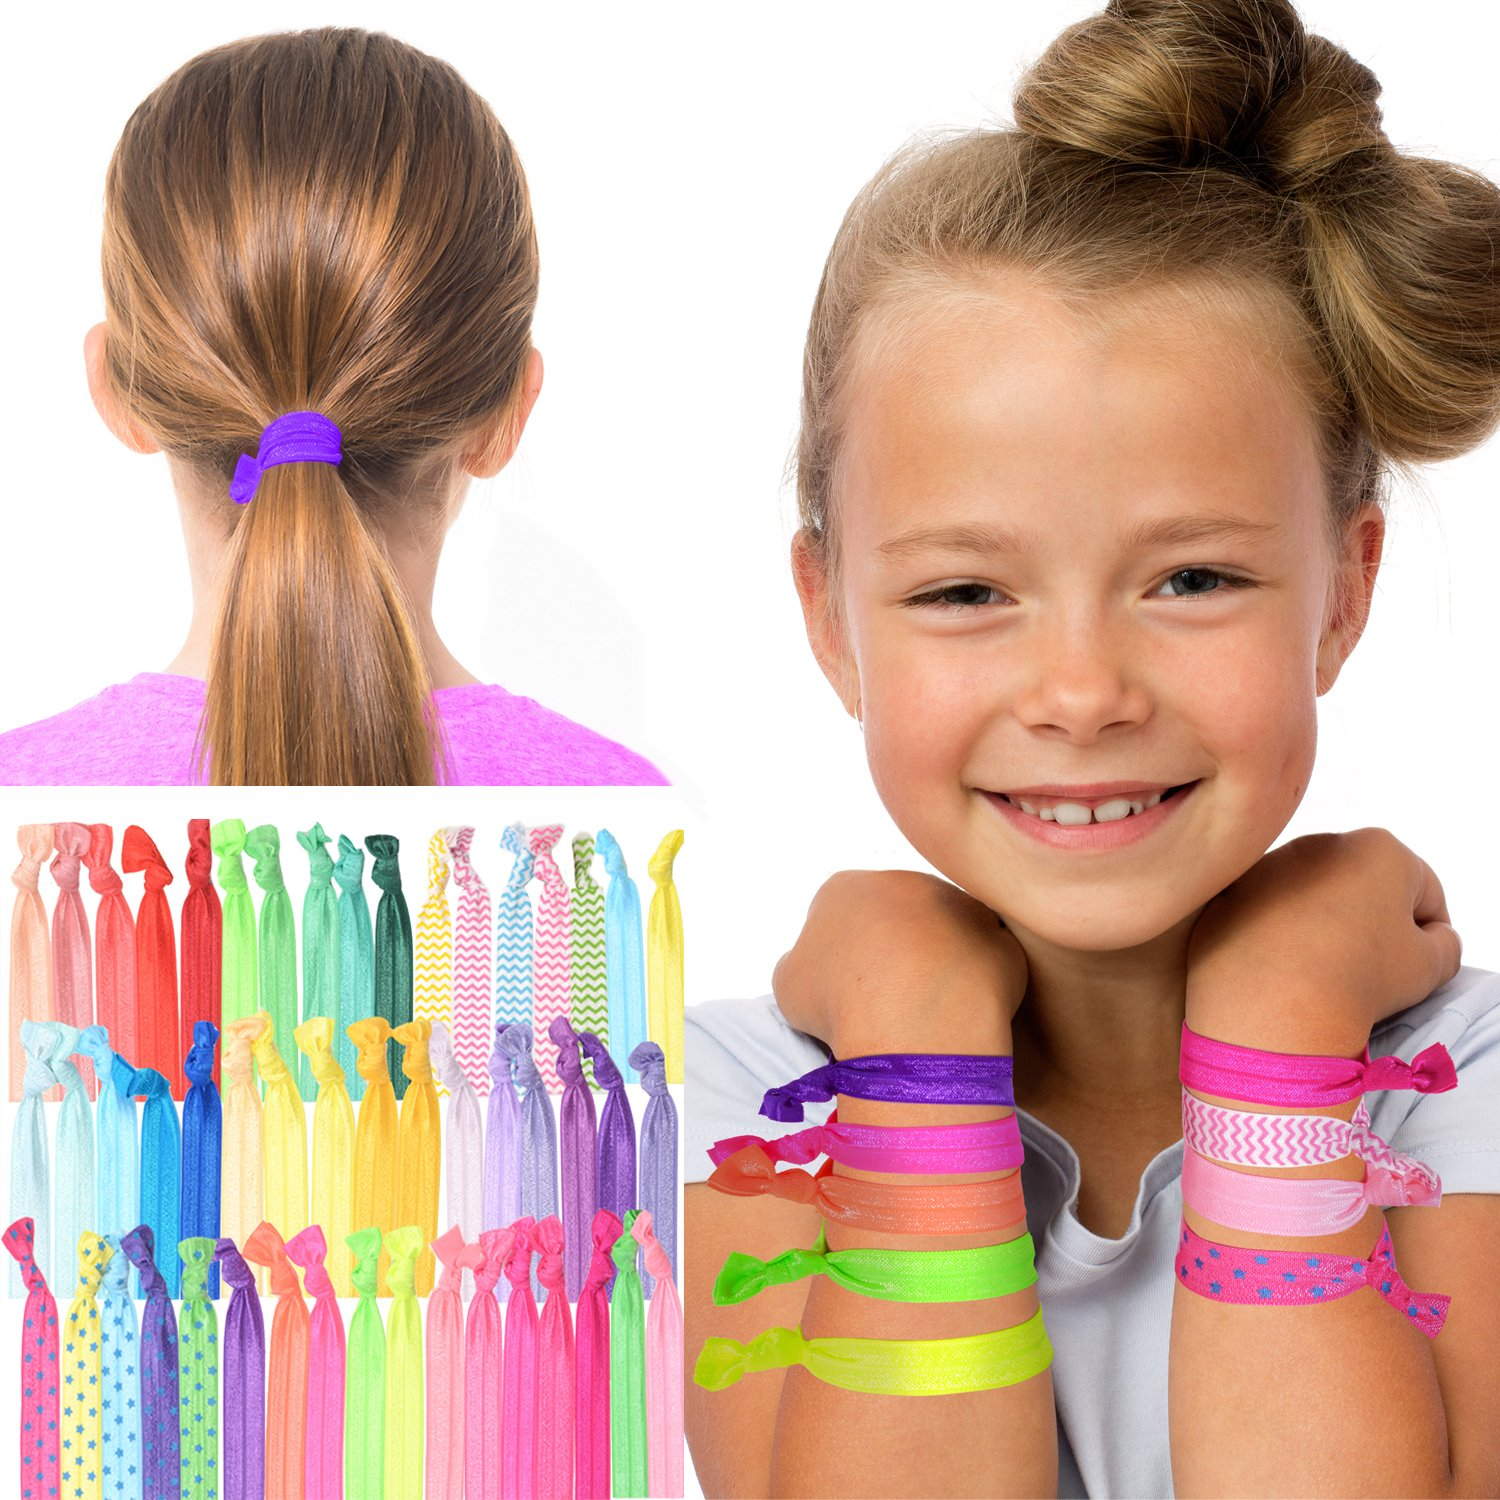 Christmas Gifts For Girls Age 11.Cheap Girls Gifts Age 11 Find Girls Gifts Age 11 Deals On